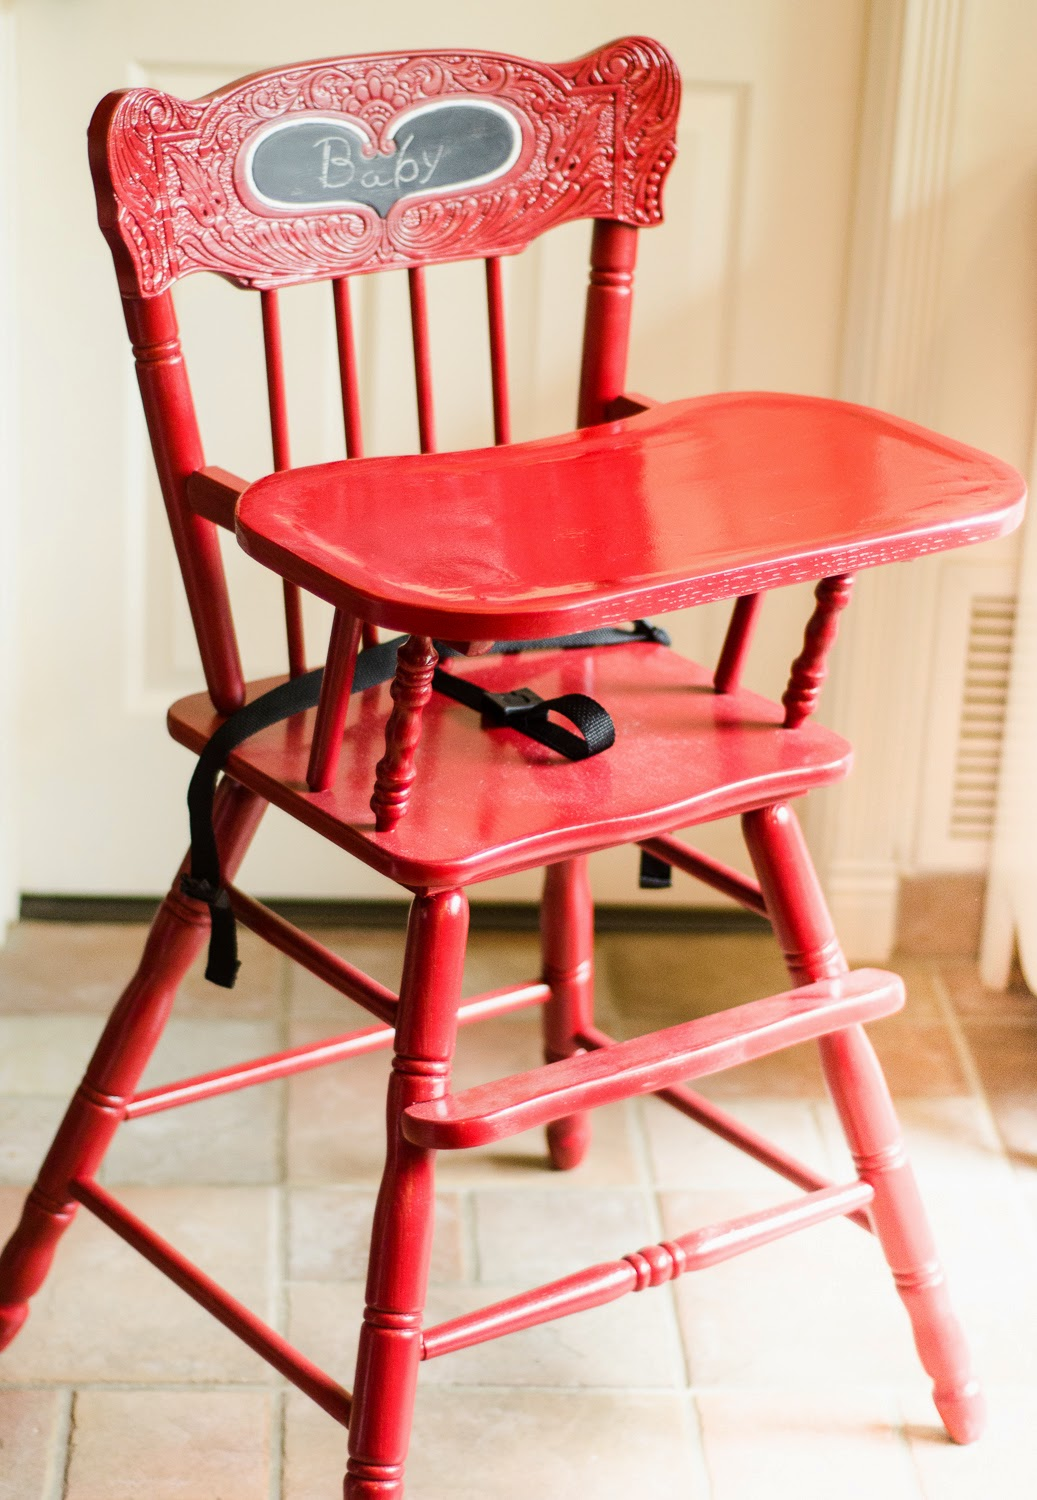 Painted wooden high chairs - Because My High Chair Had This Adorable Carving On The Back Of The Seat I Painted The Heart In With Chalkboard Paint And Outlined It With White Paint